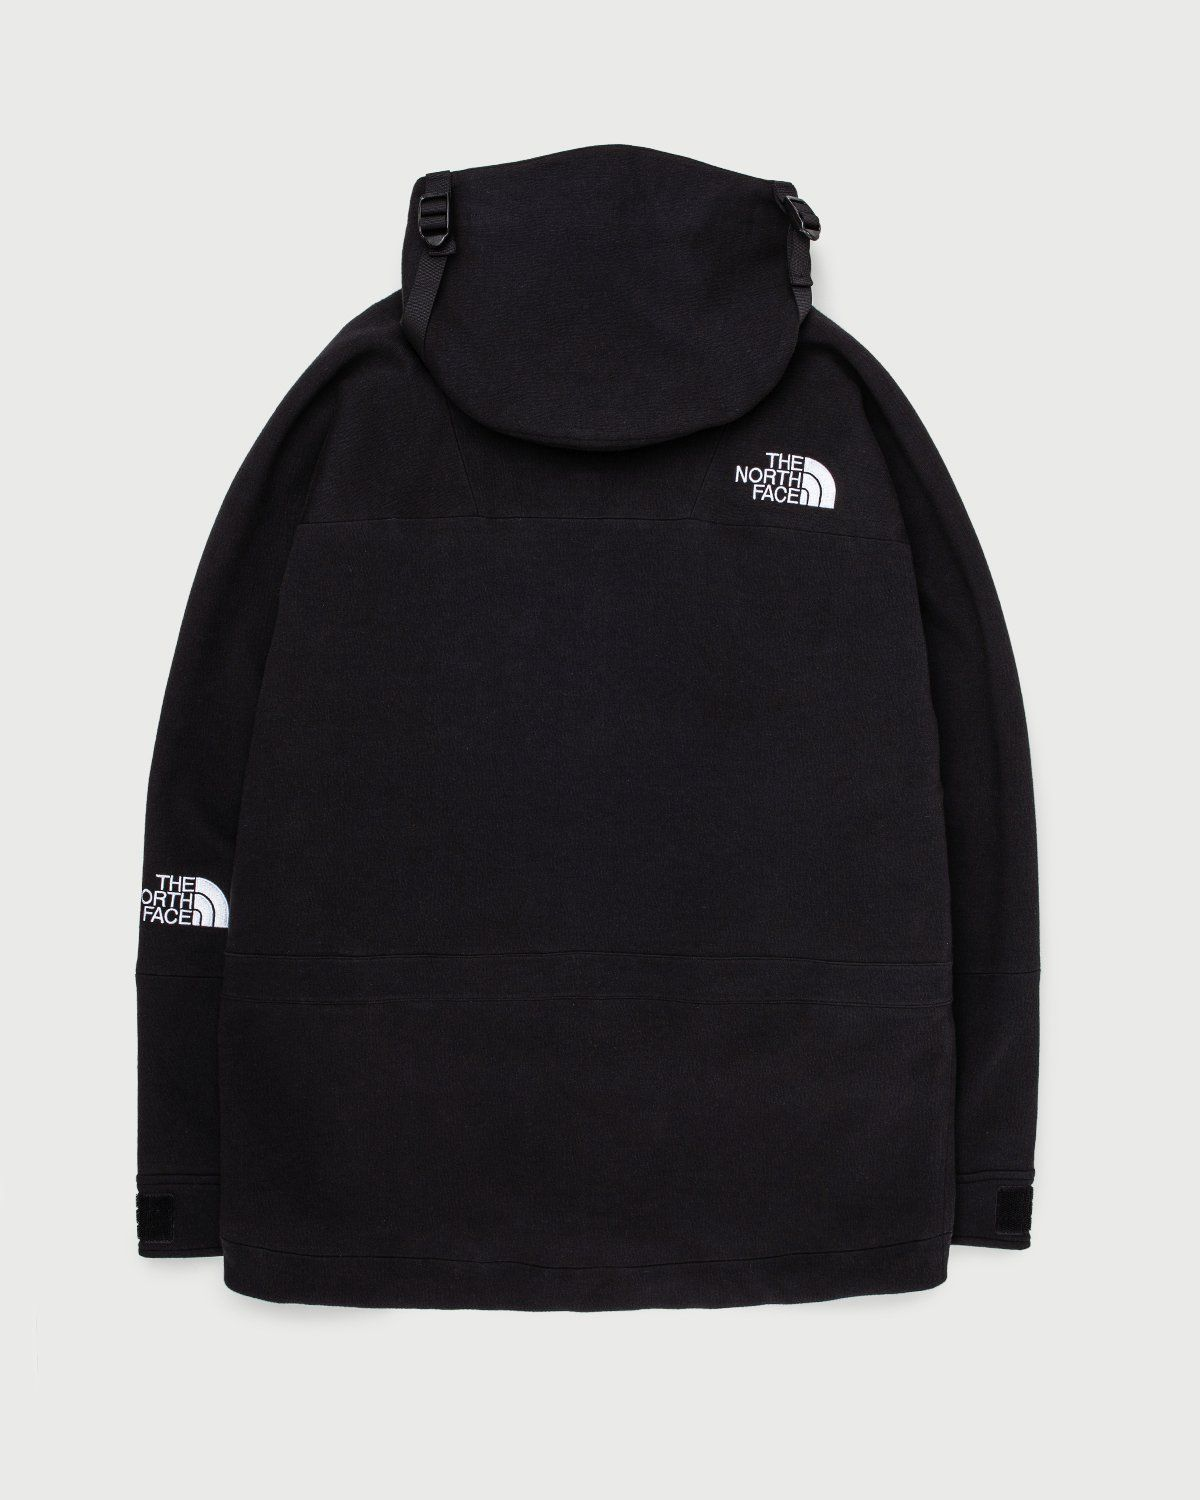 The North Face Black Series — Spacer Knit Mountain Light Jacket Black - Image 3